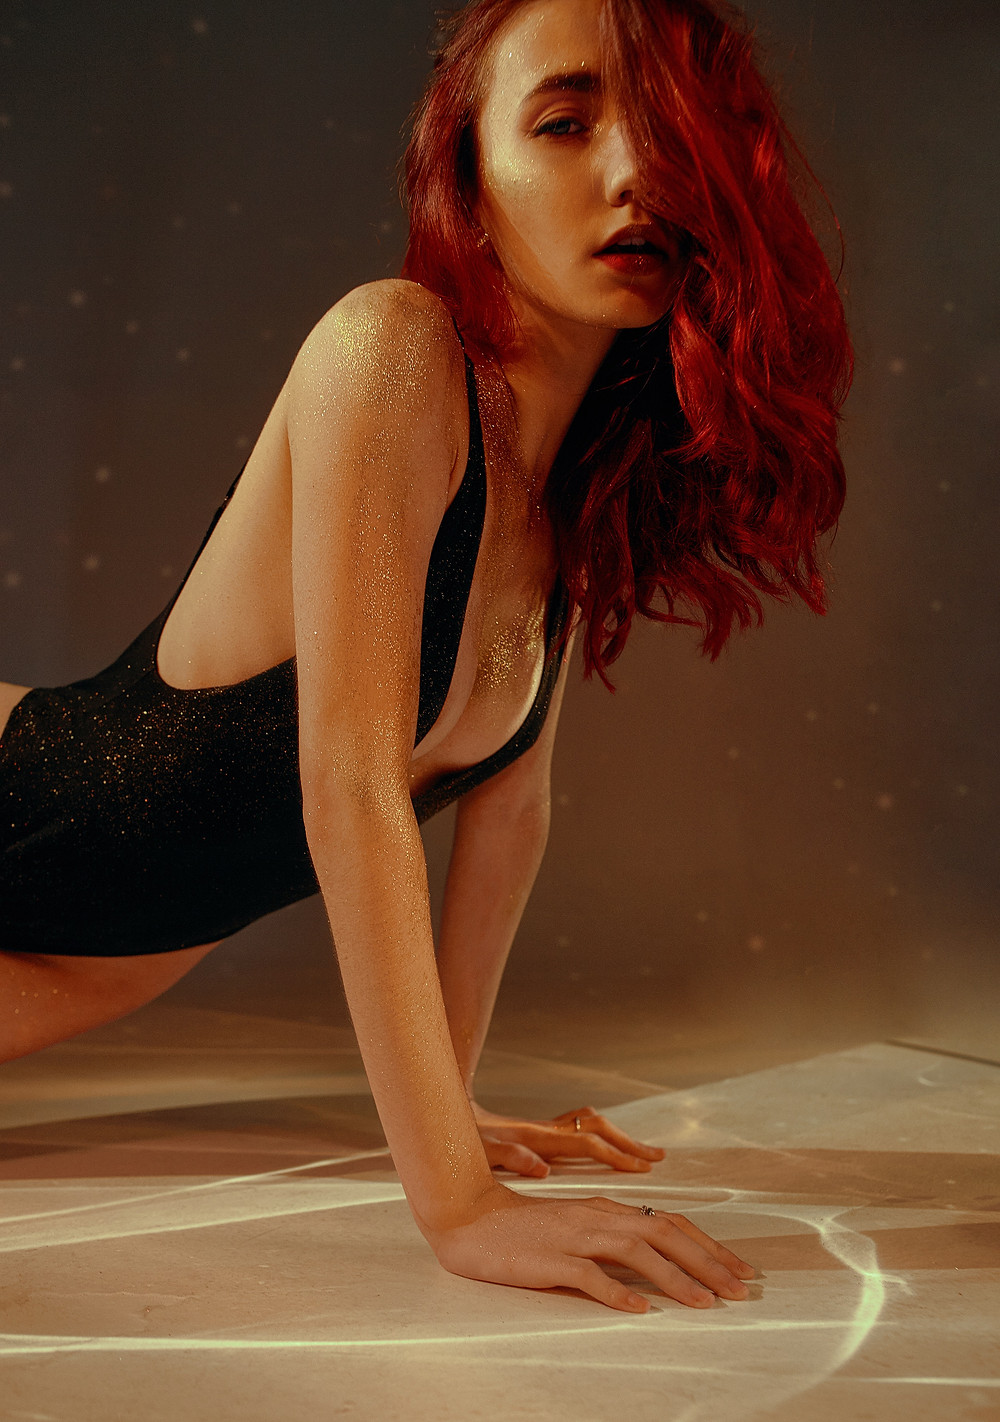 Minx+ Muse is meant to express the sexual side of sensual movement without excuses of sugar coating the process as fitness focused.